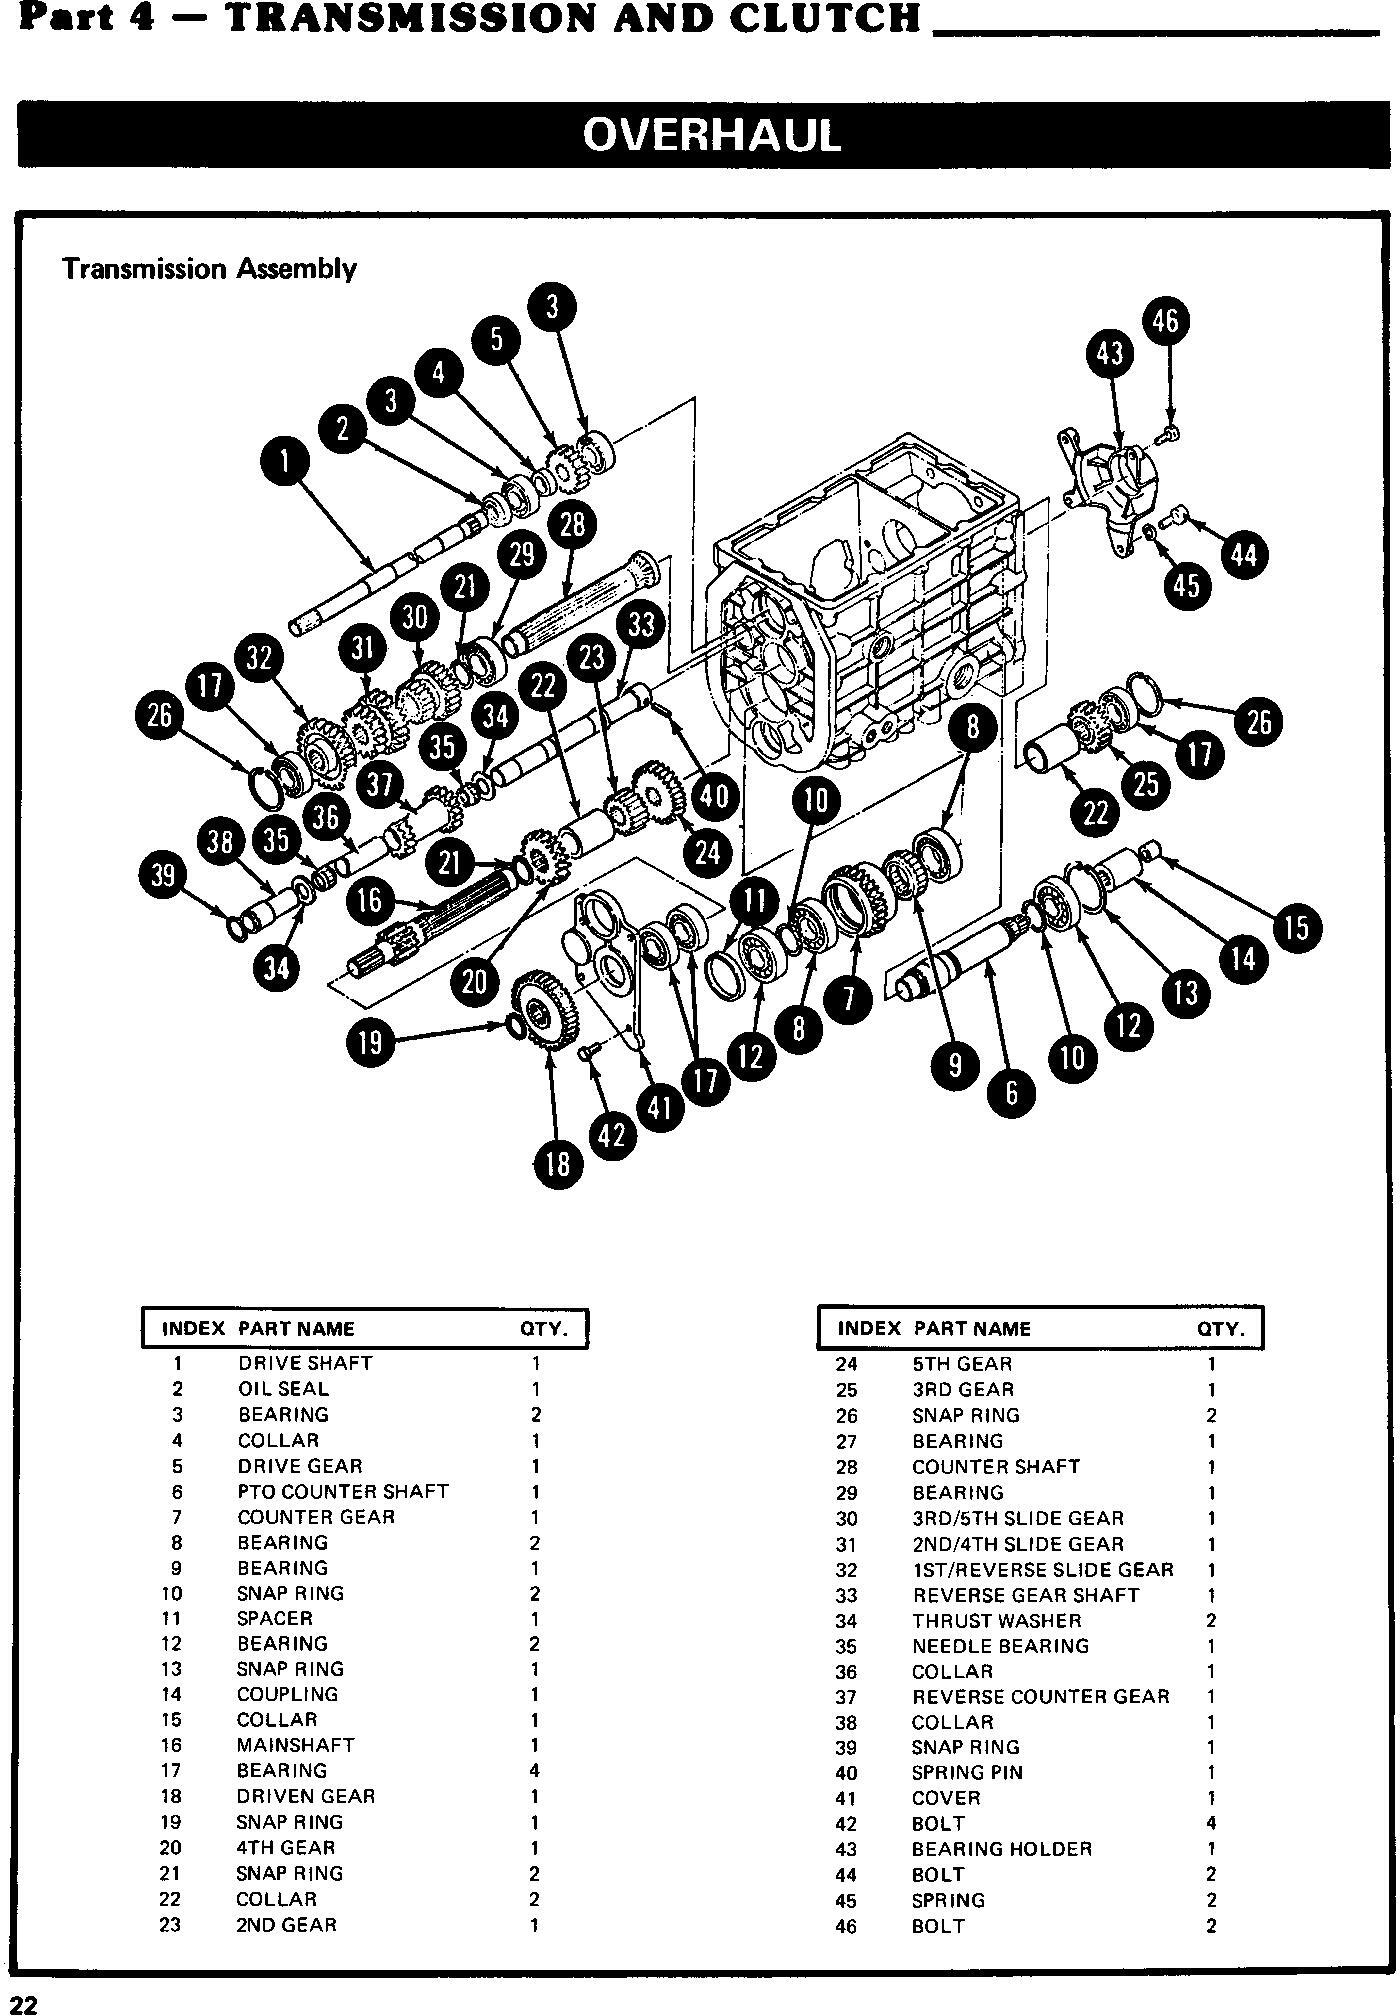 Ford 1100, 1200, 1300, 1500, 1700, 1900 Tractor Complete Service Manual (SE3771) - 3